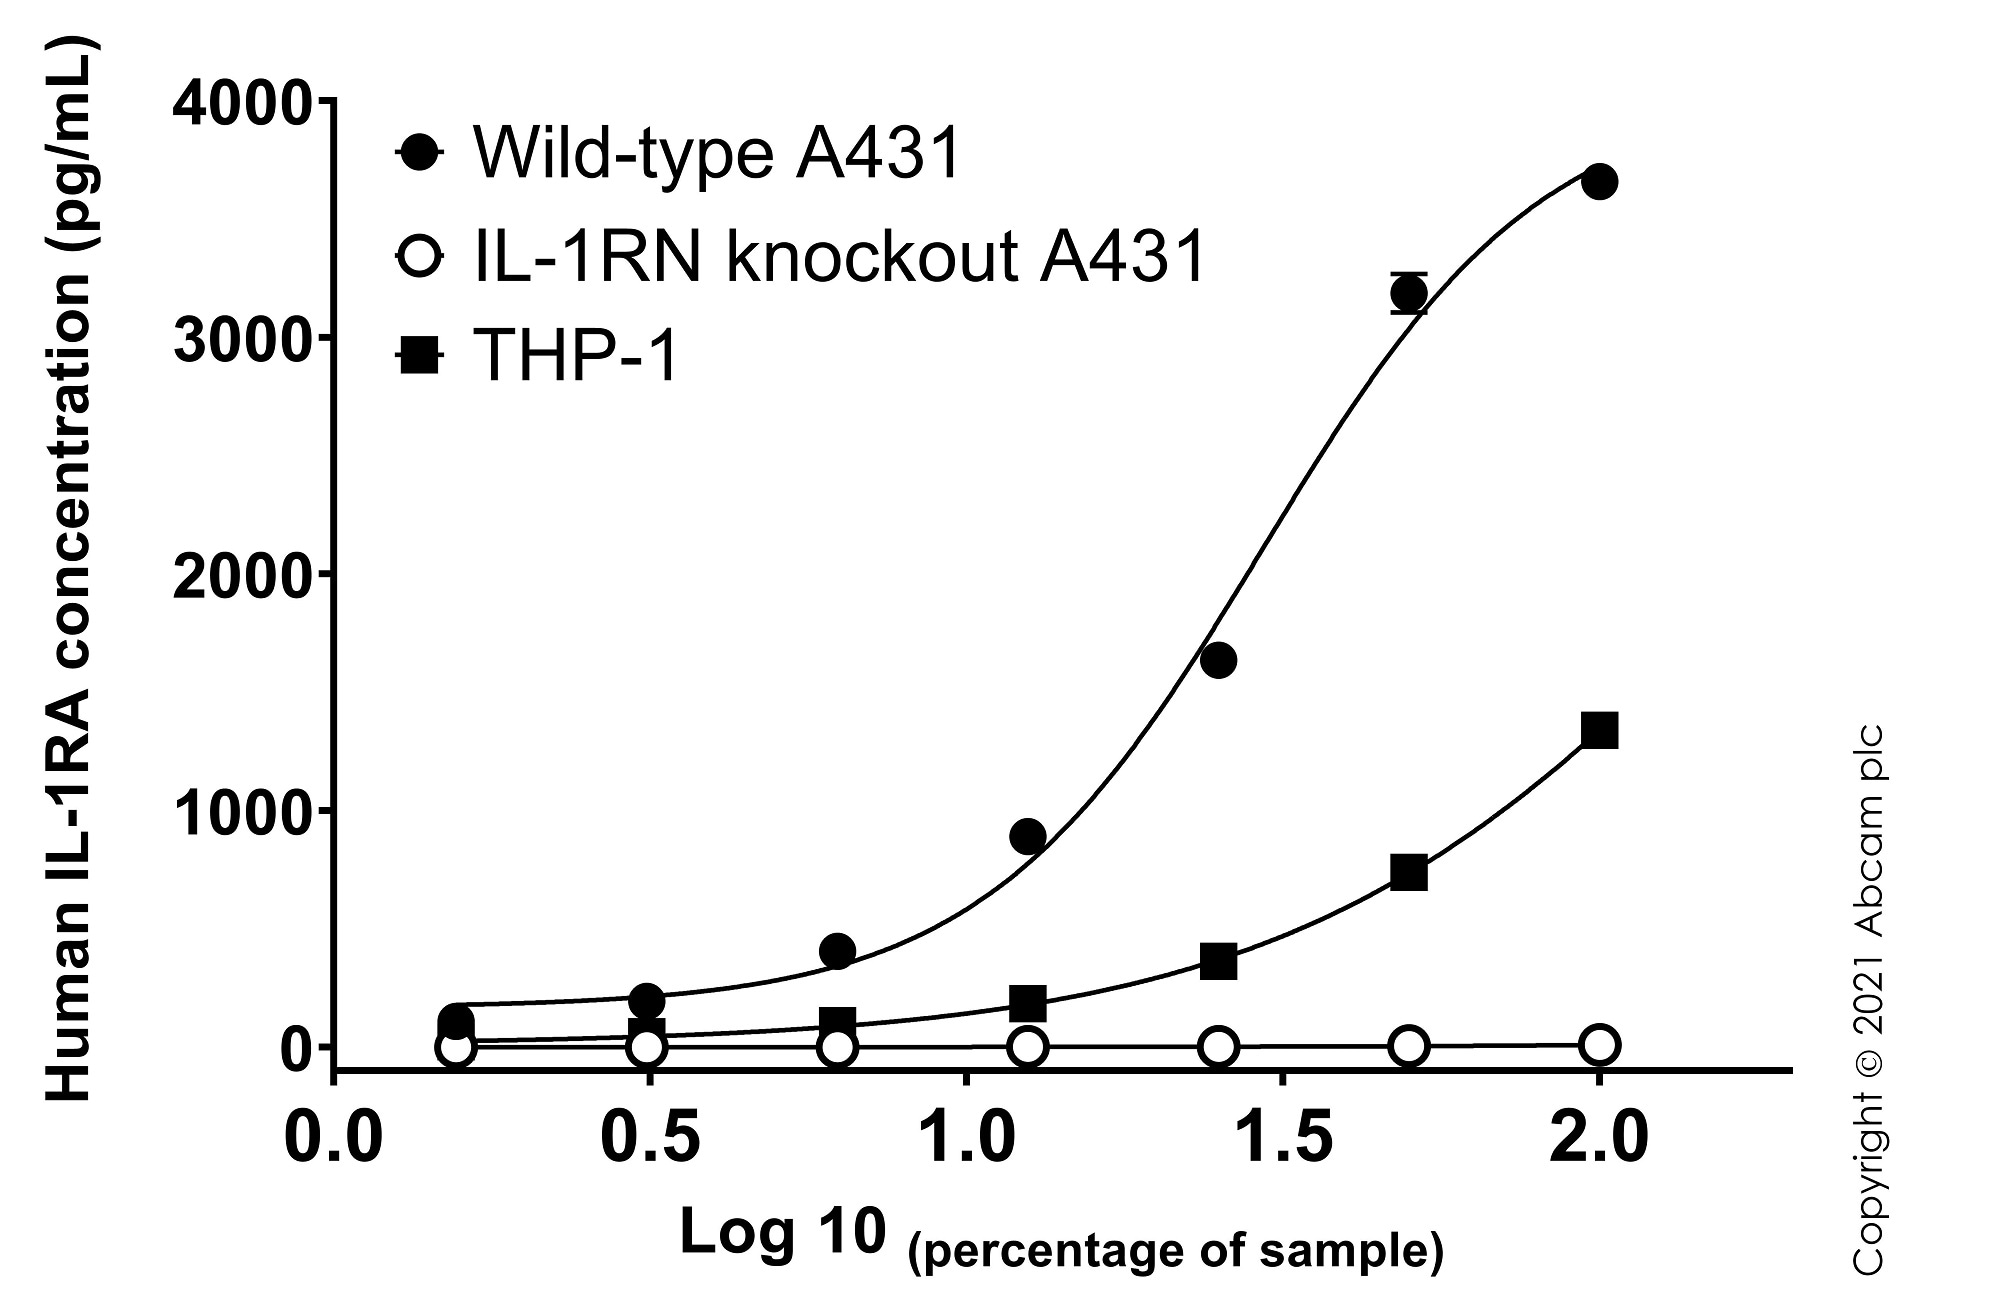 Sandwich ELISA - Human IL-1RA knockout A-431 and THP-1 cells